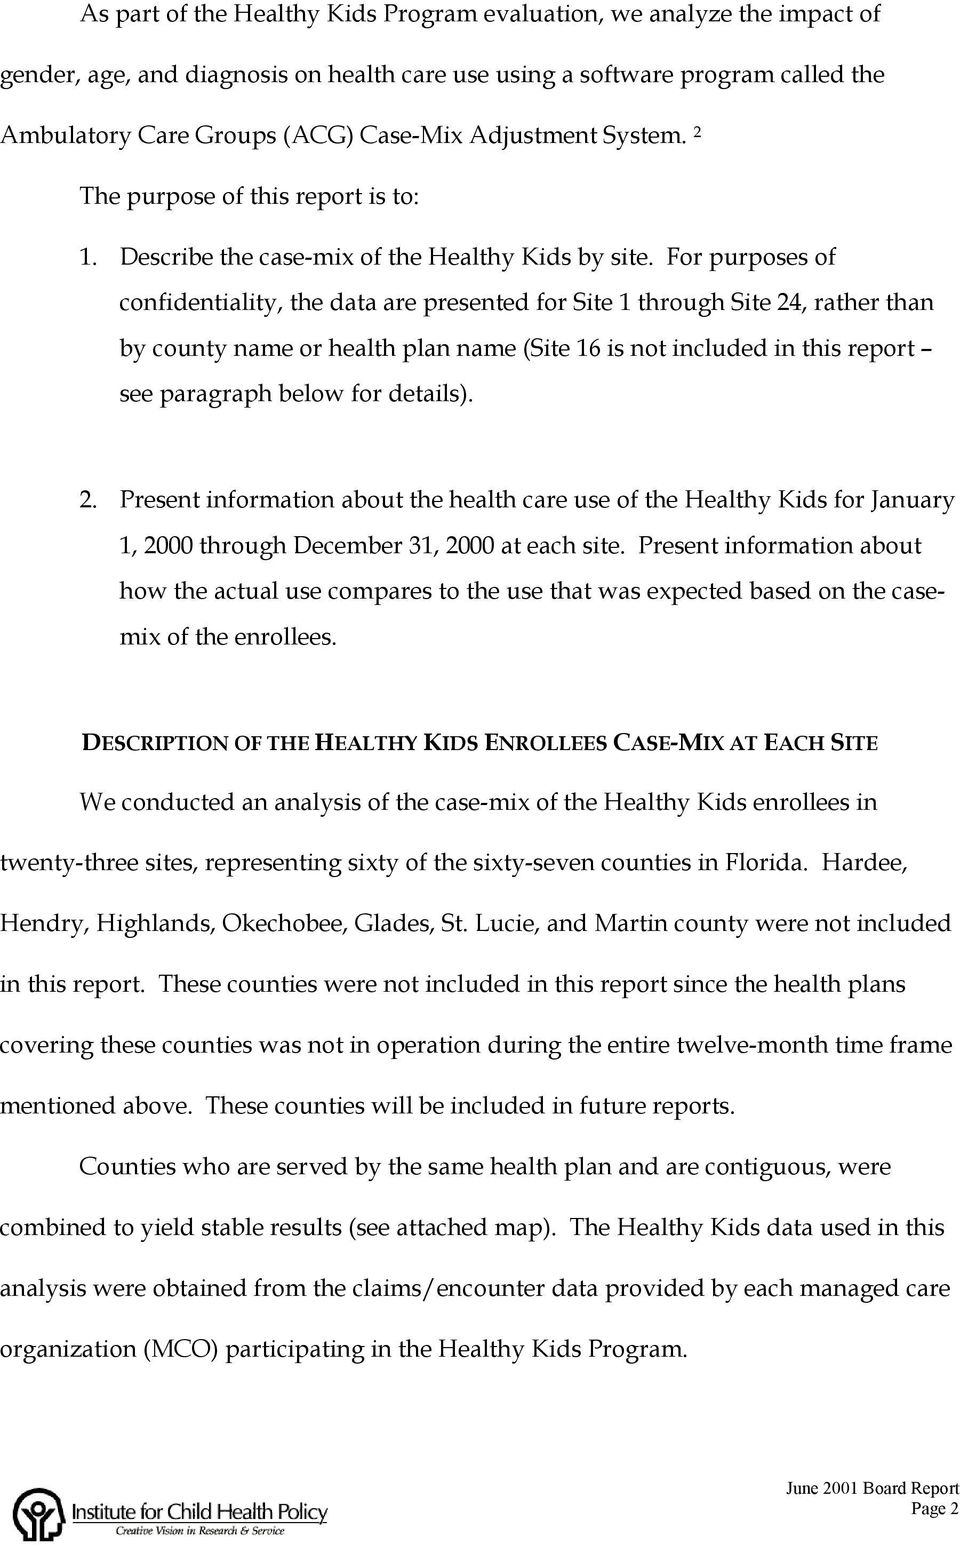 For purposes of confidentiality, the data are presented for Site 1 through Site 24, rather than by county name or health plan name (Site 16 is not included in this report see paragraph below for